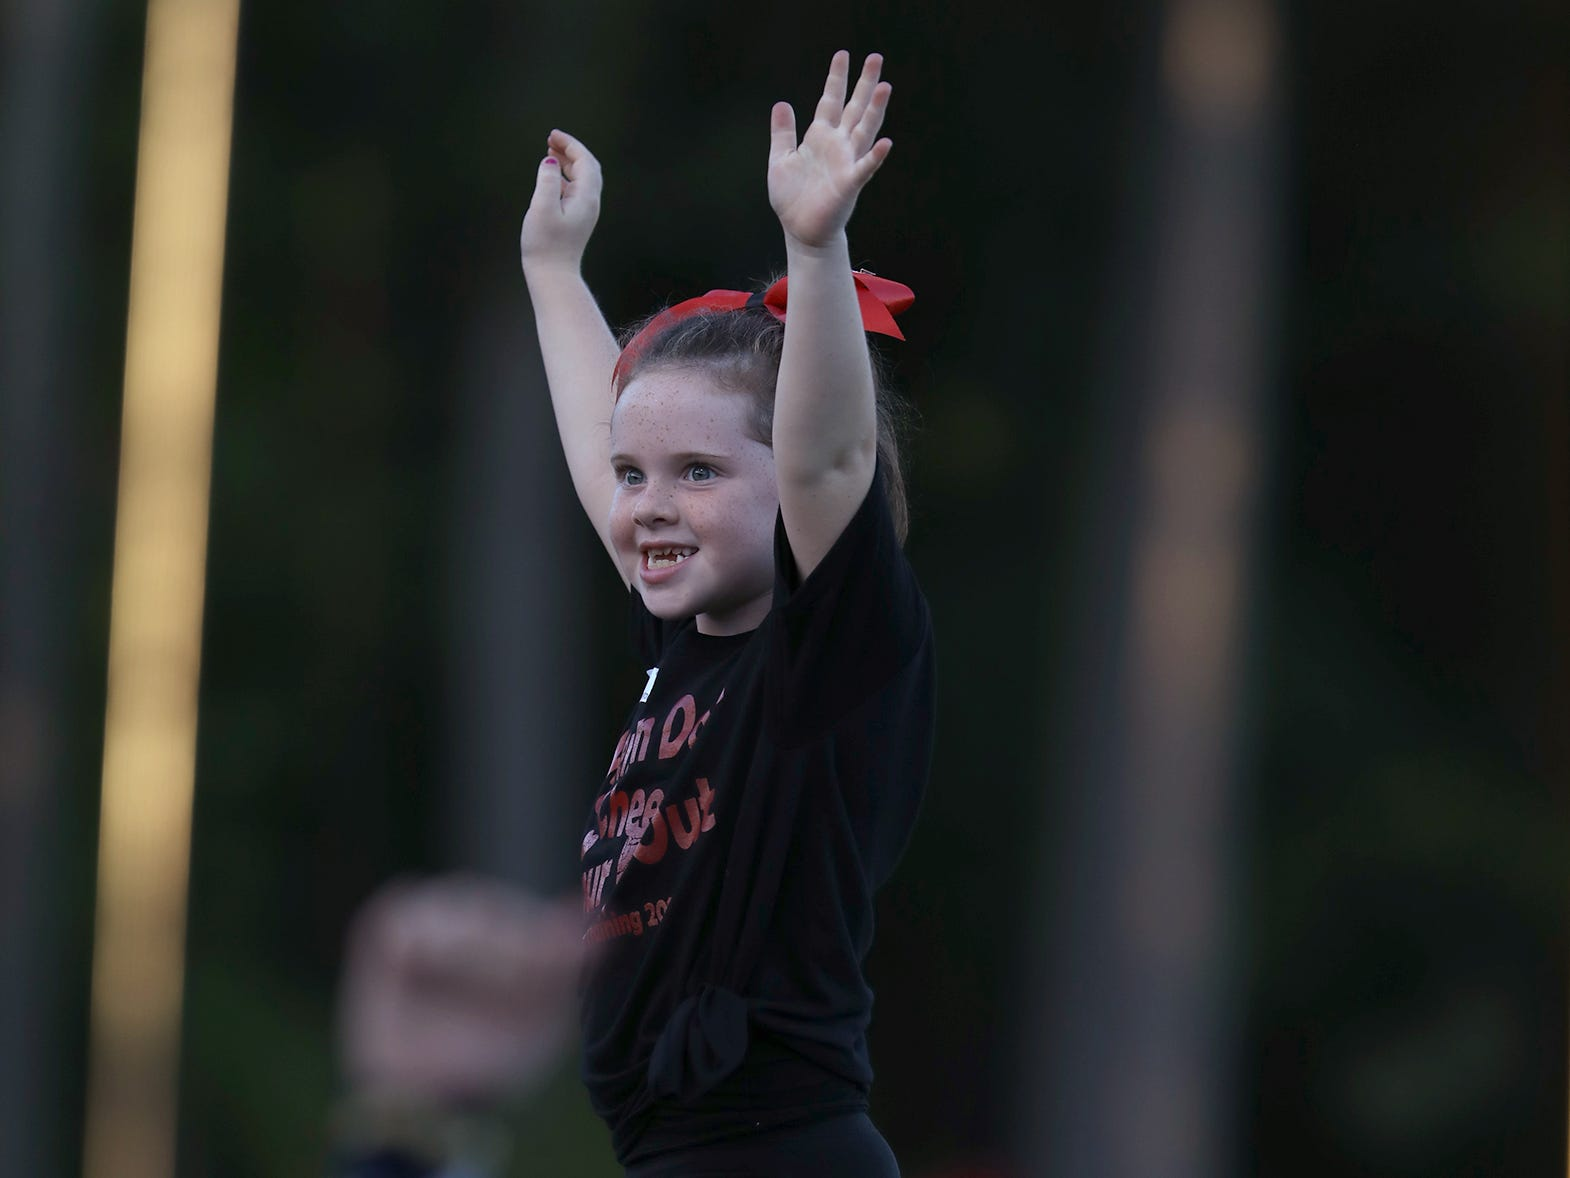 Payton Lauber, a 7-year-old Titan in Training, cheered with the rest of the Titan in Training squad and the high school cheerleaders before and during the first half of Webster Thomas's home game.